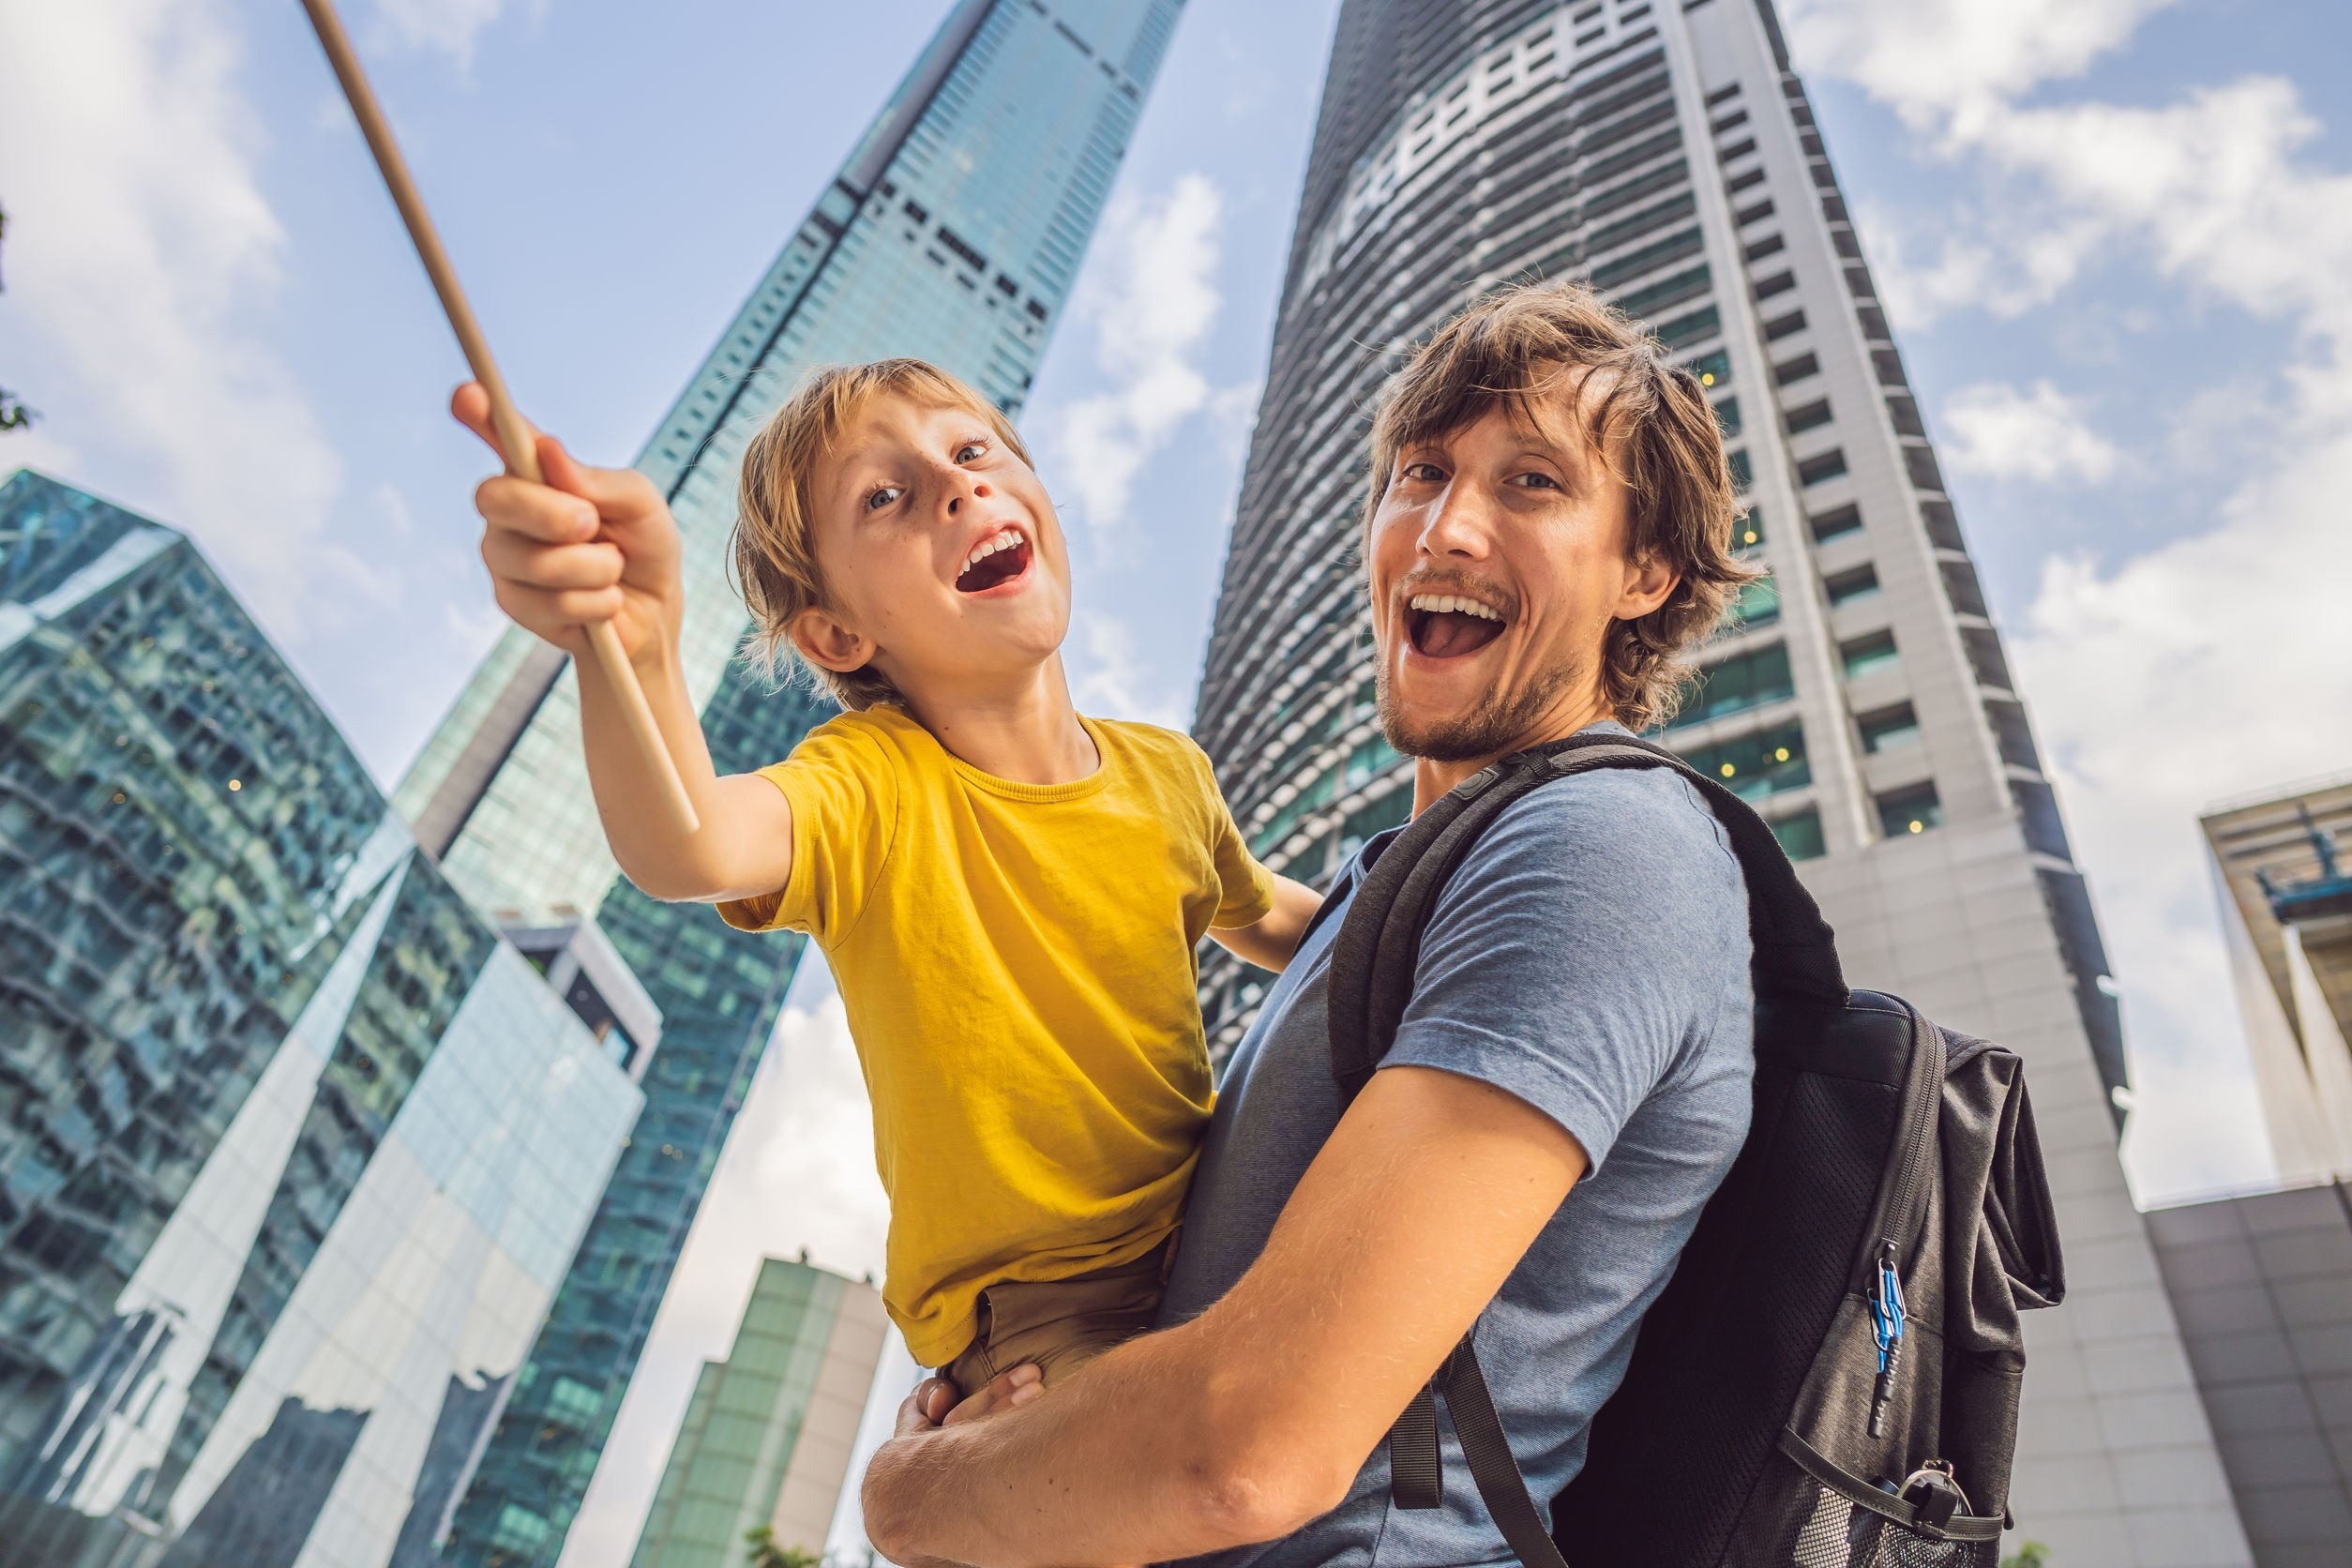 dad and son happy in city